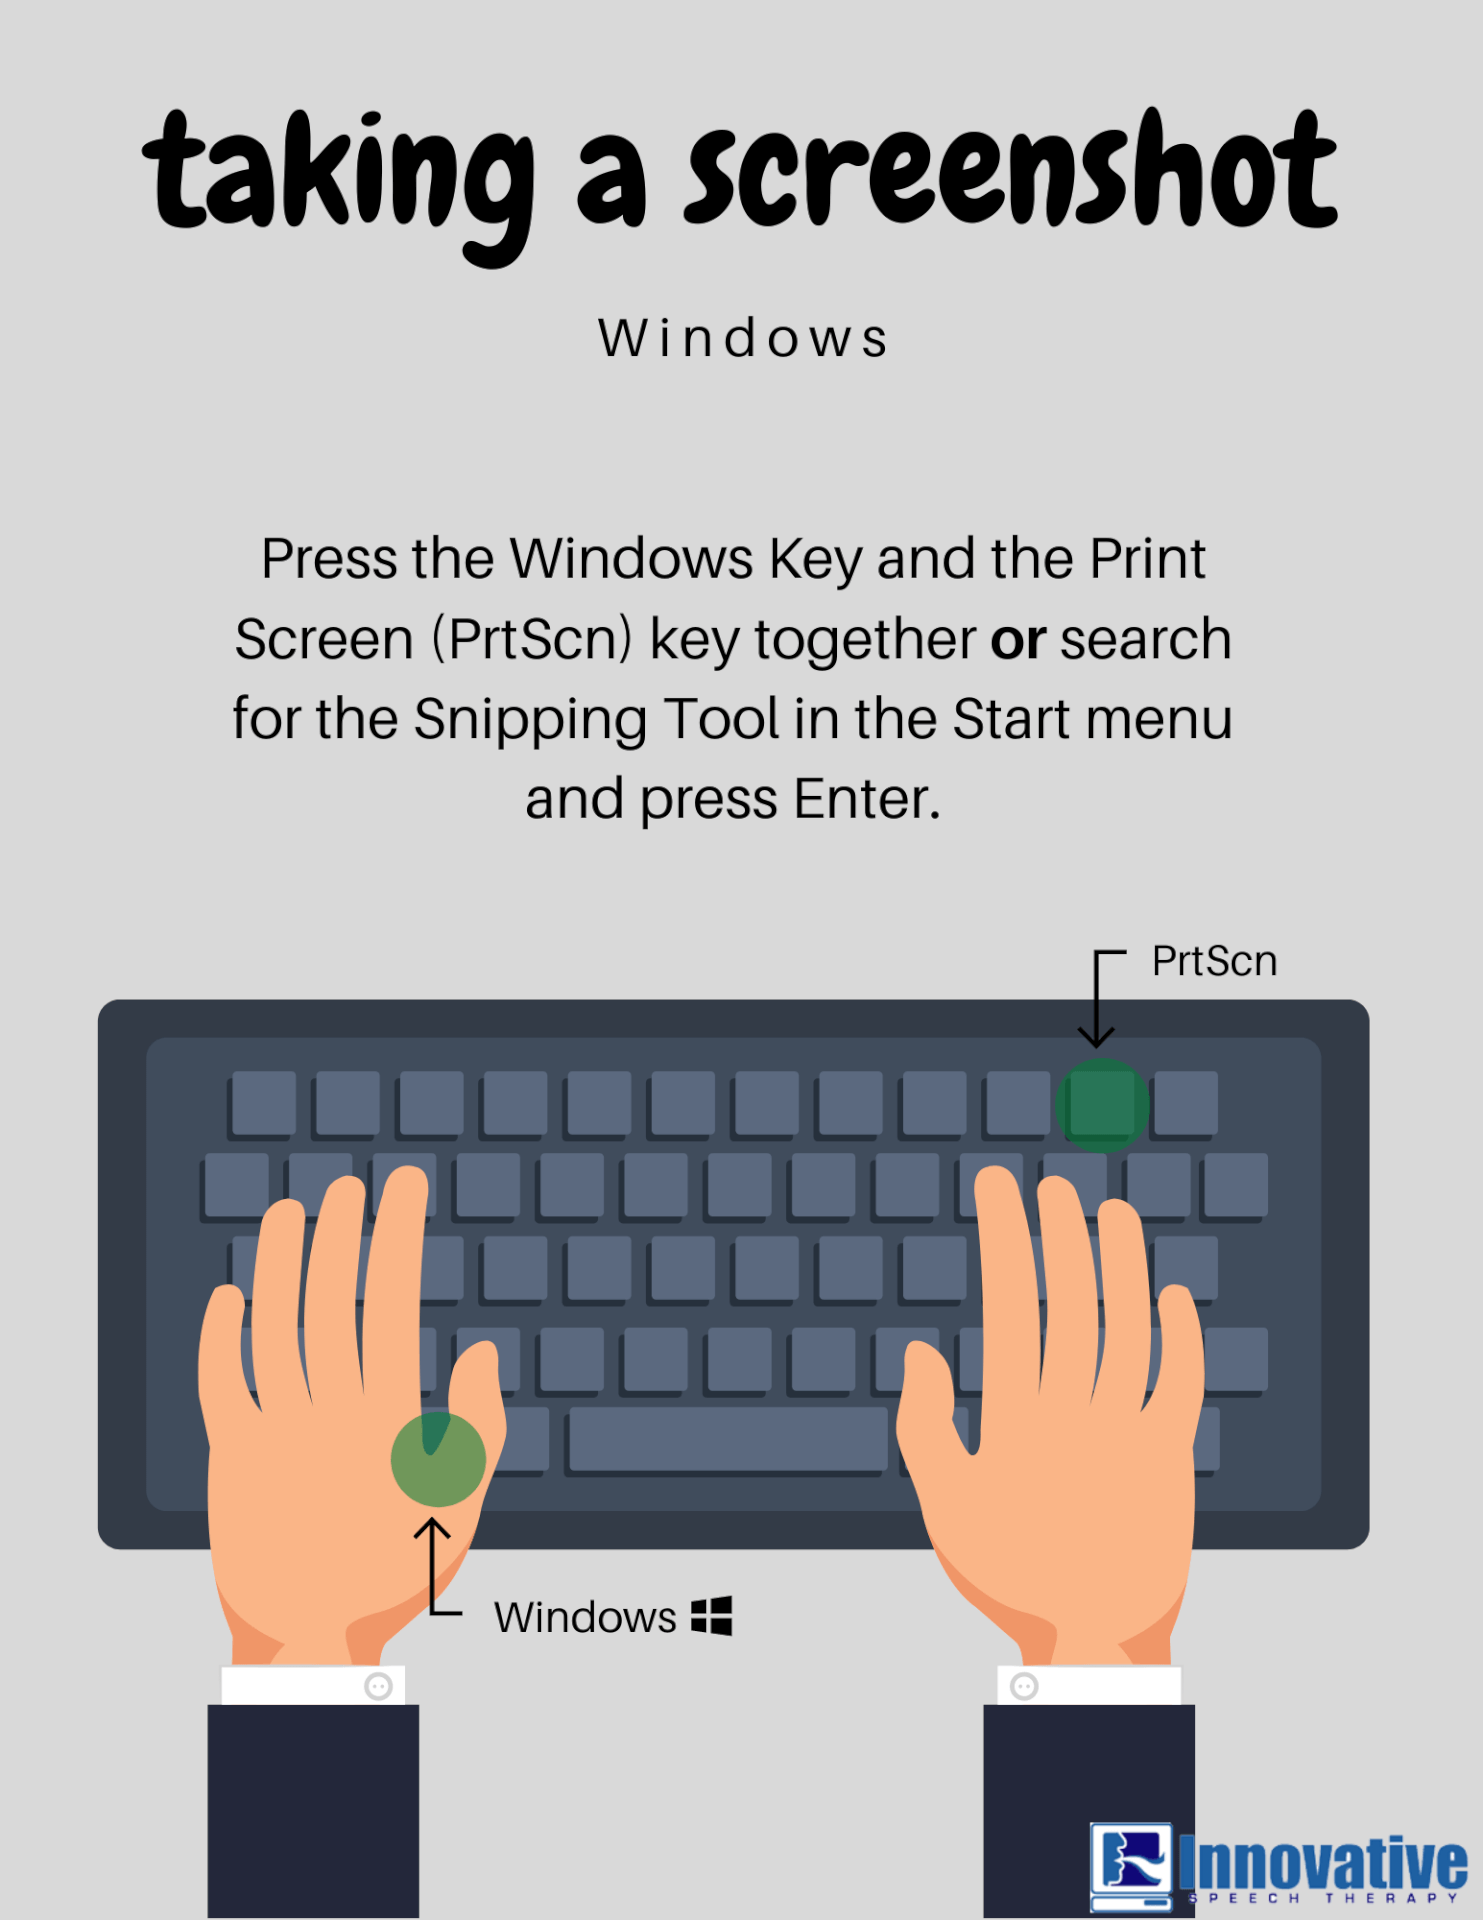 Graphic depicting hands on a keyboard taking a screenshot on a Windows computer. Image text: Taking a screenshot: Windows. Press the Windows Key and the Print Screen key together or search for the Snipping Tool in the Start menu and press Enter.